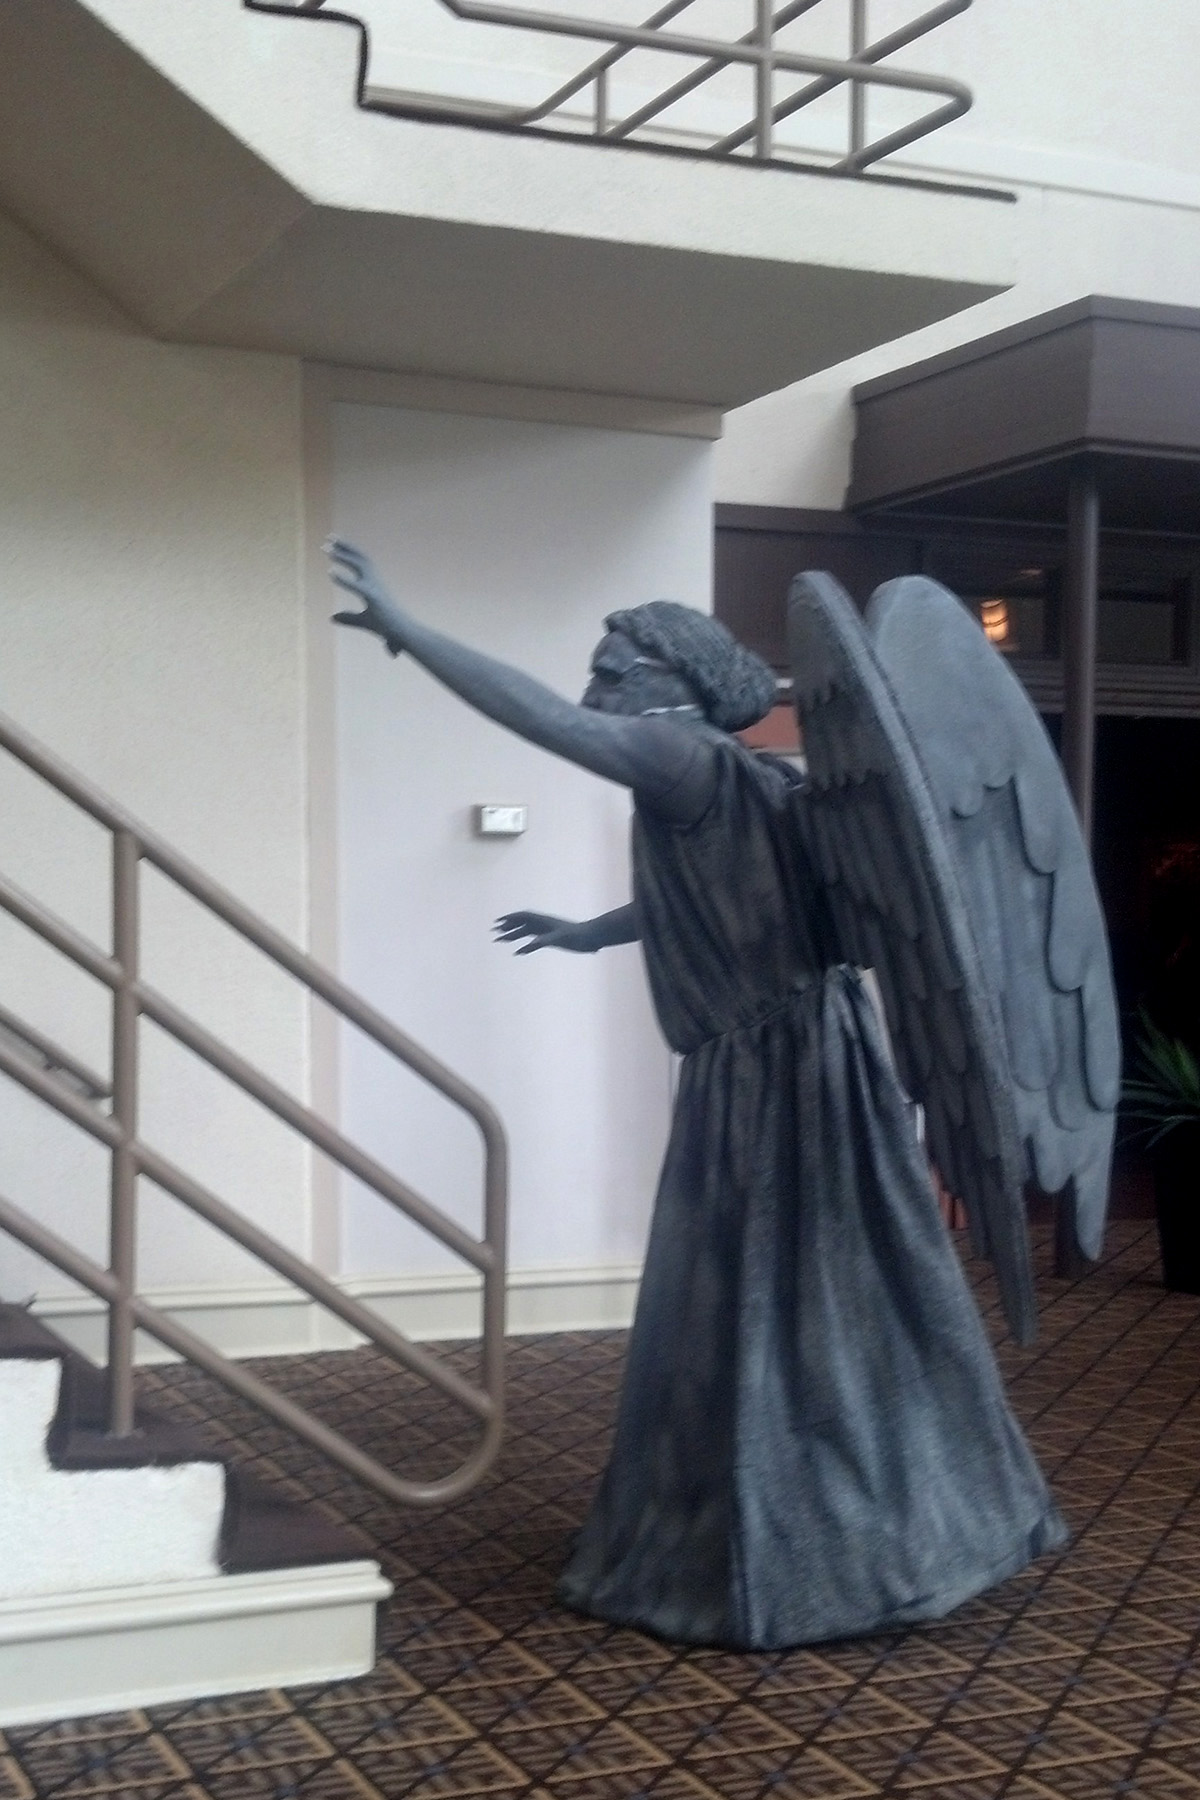 A person dressed as a weeping angel, posing at the bottom of a stair case.